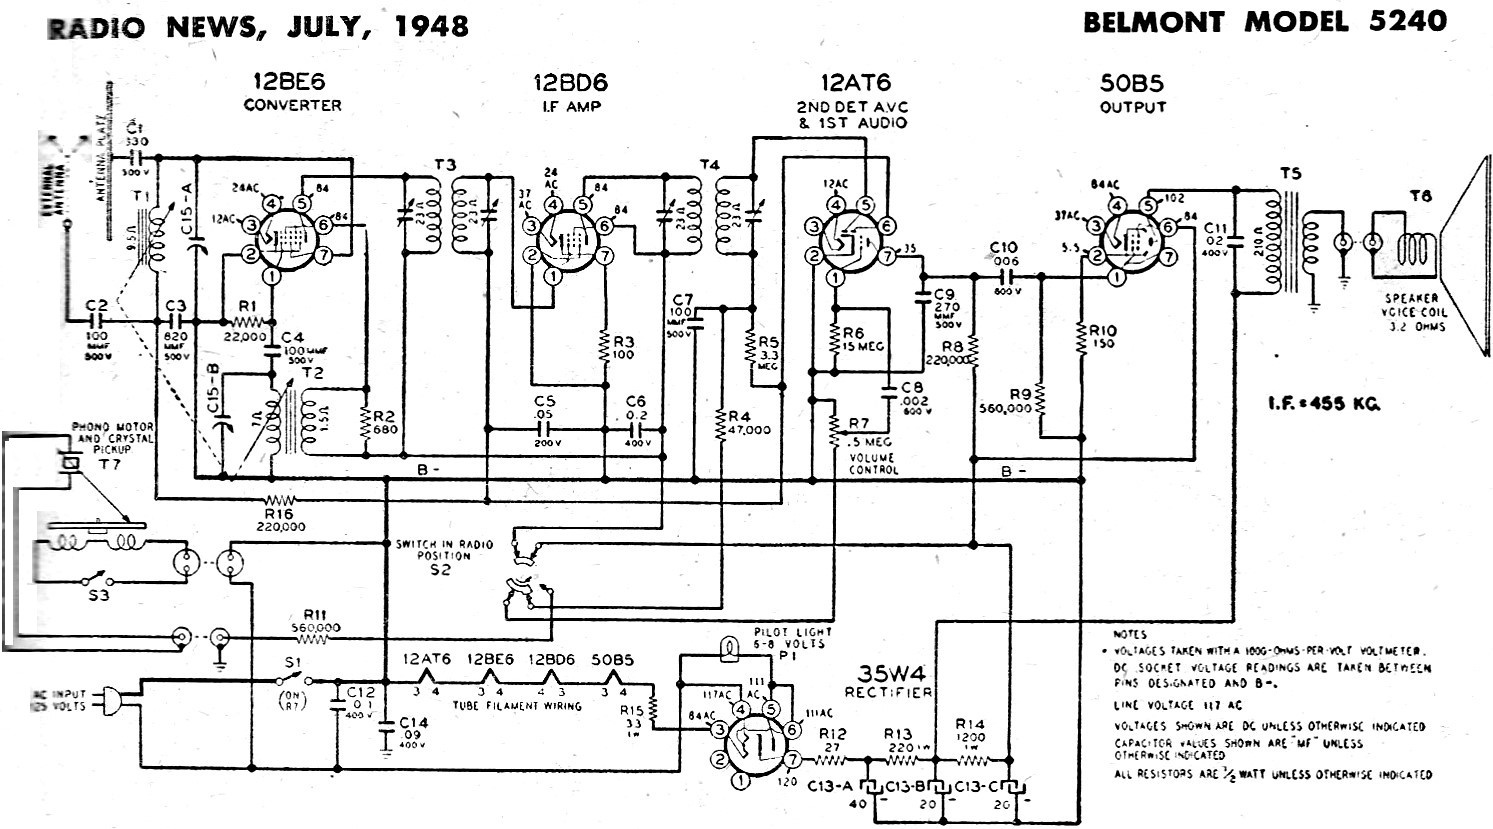 Belmont Model 5240 Schematic  U0026 Parts List  July 1948 Radio News